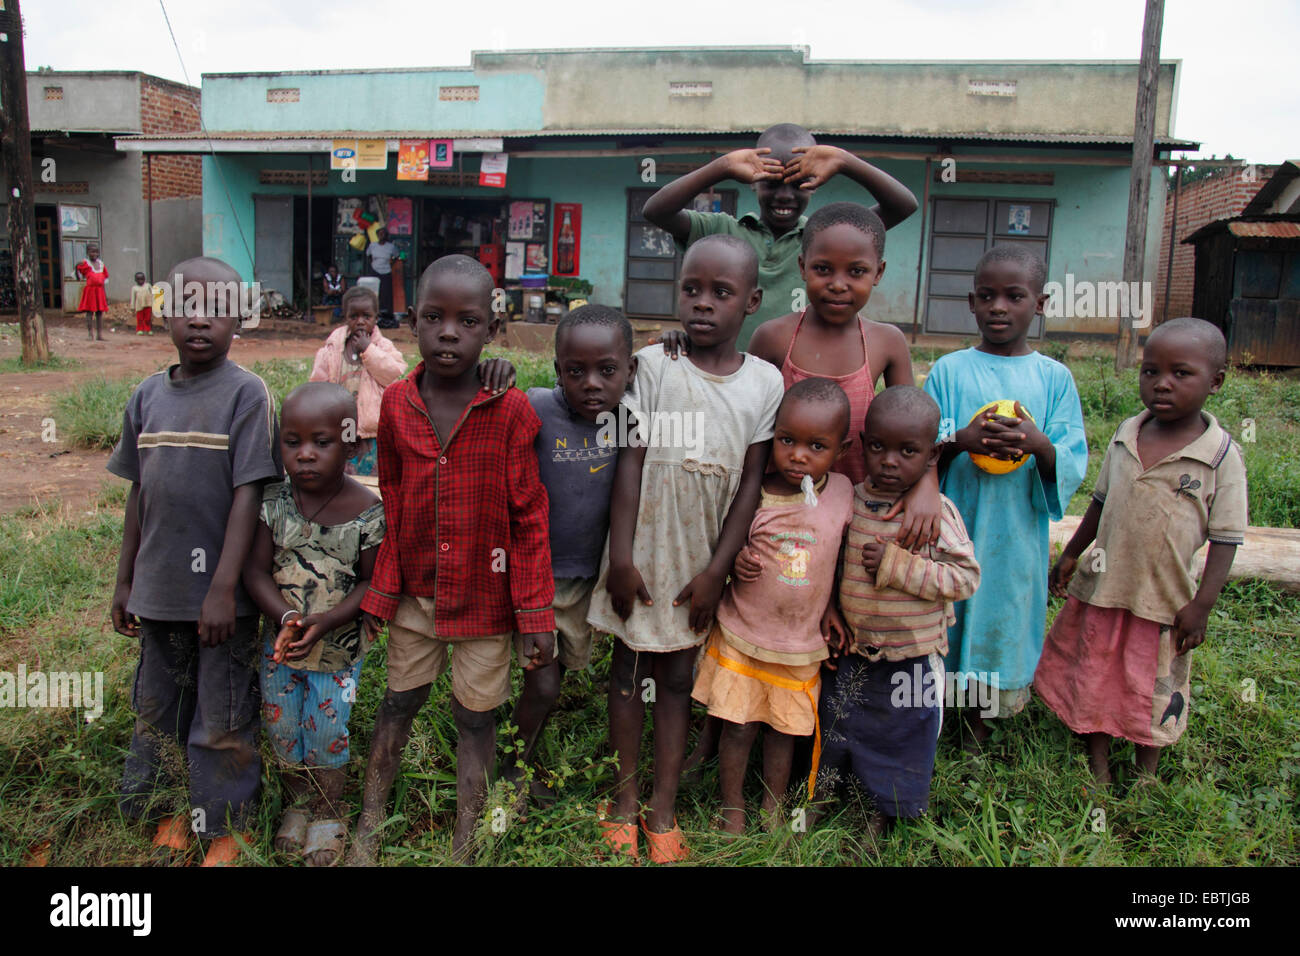 Groupe d'enfants africains, l'Ouganda Photo Stock